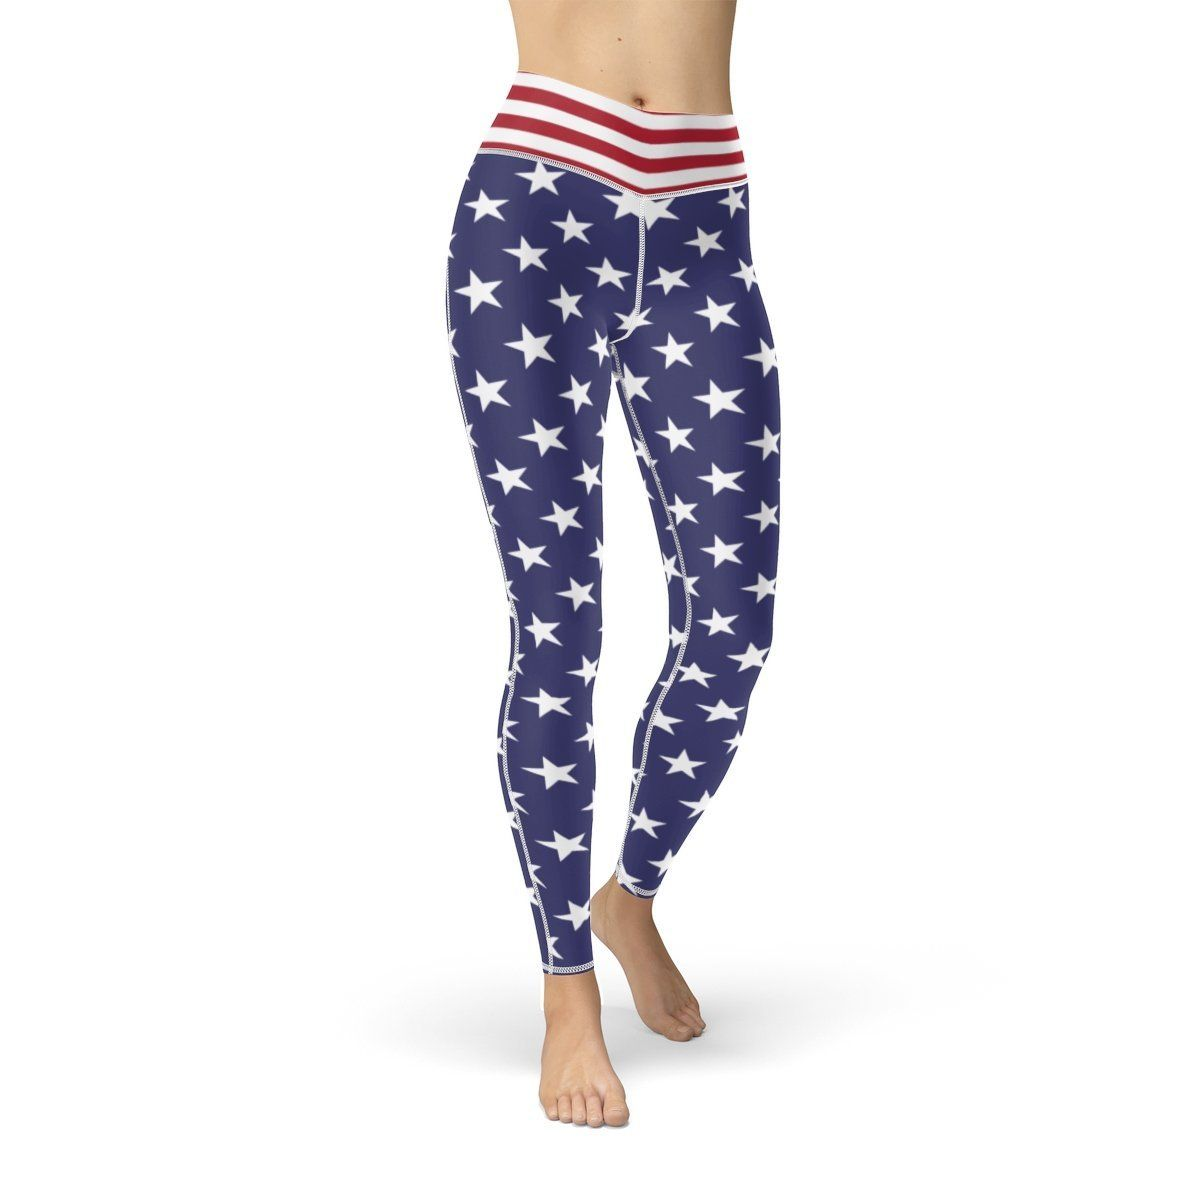 Patriotic Leggings with Stars /& Stripes from USA Flag Waistband Cut /& Sew Sport Leggings